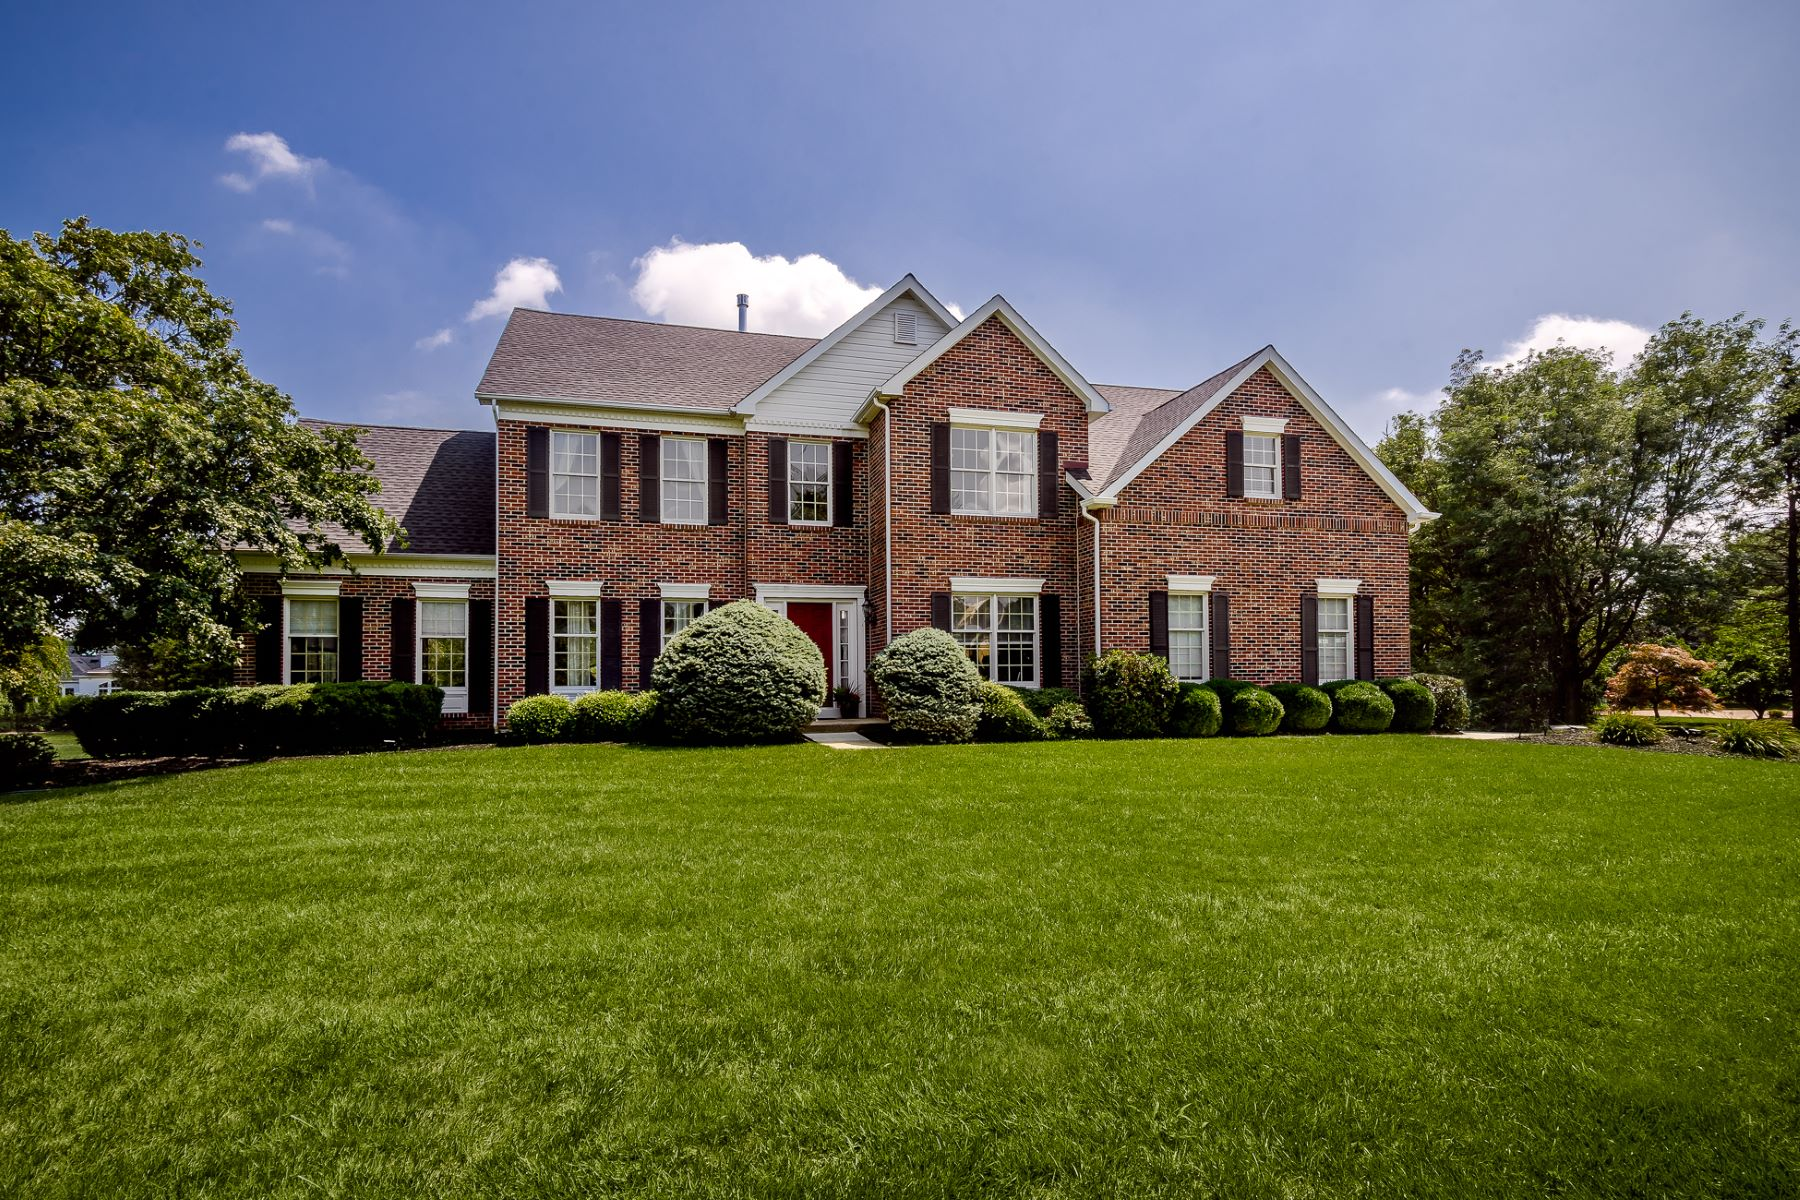 Property for Sale at A Fresh Take on Sophistication 40 Reed Drive South, West Windsor, New Jersey 08550 United States